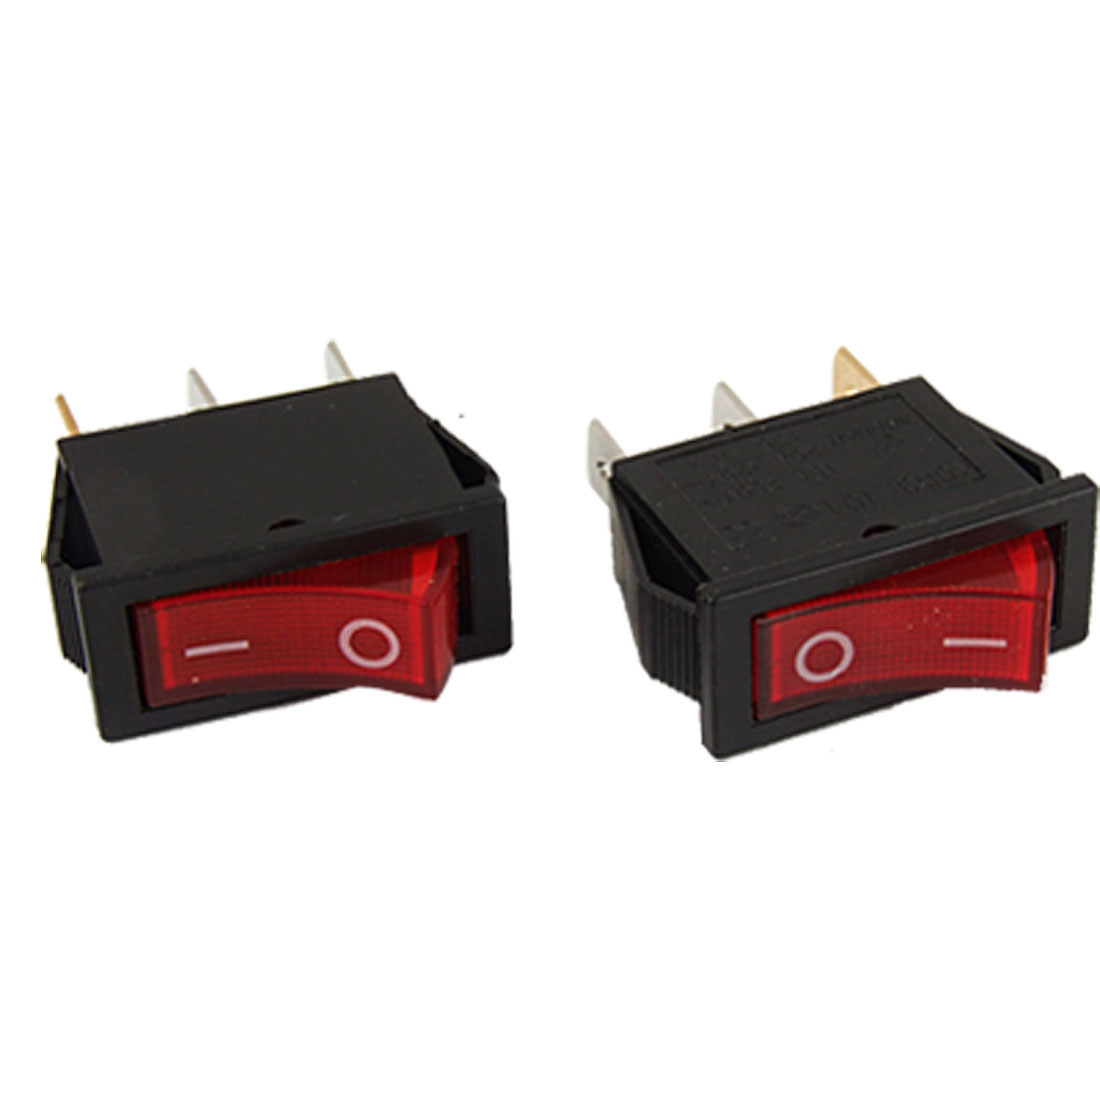 AC 15A/250V 20A/125V Red Light ON/OFF 2 Position SPST Boat Rocker Switch 2pcs